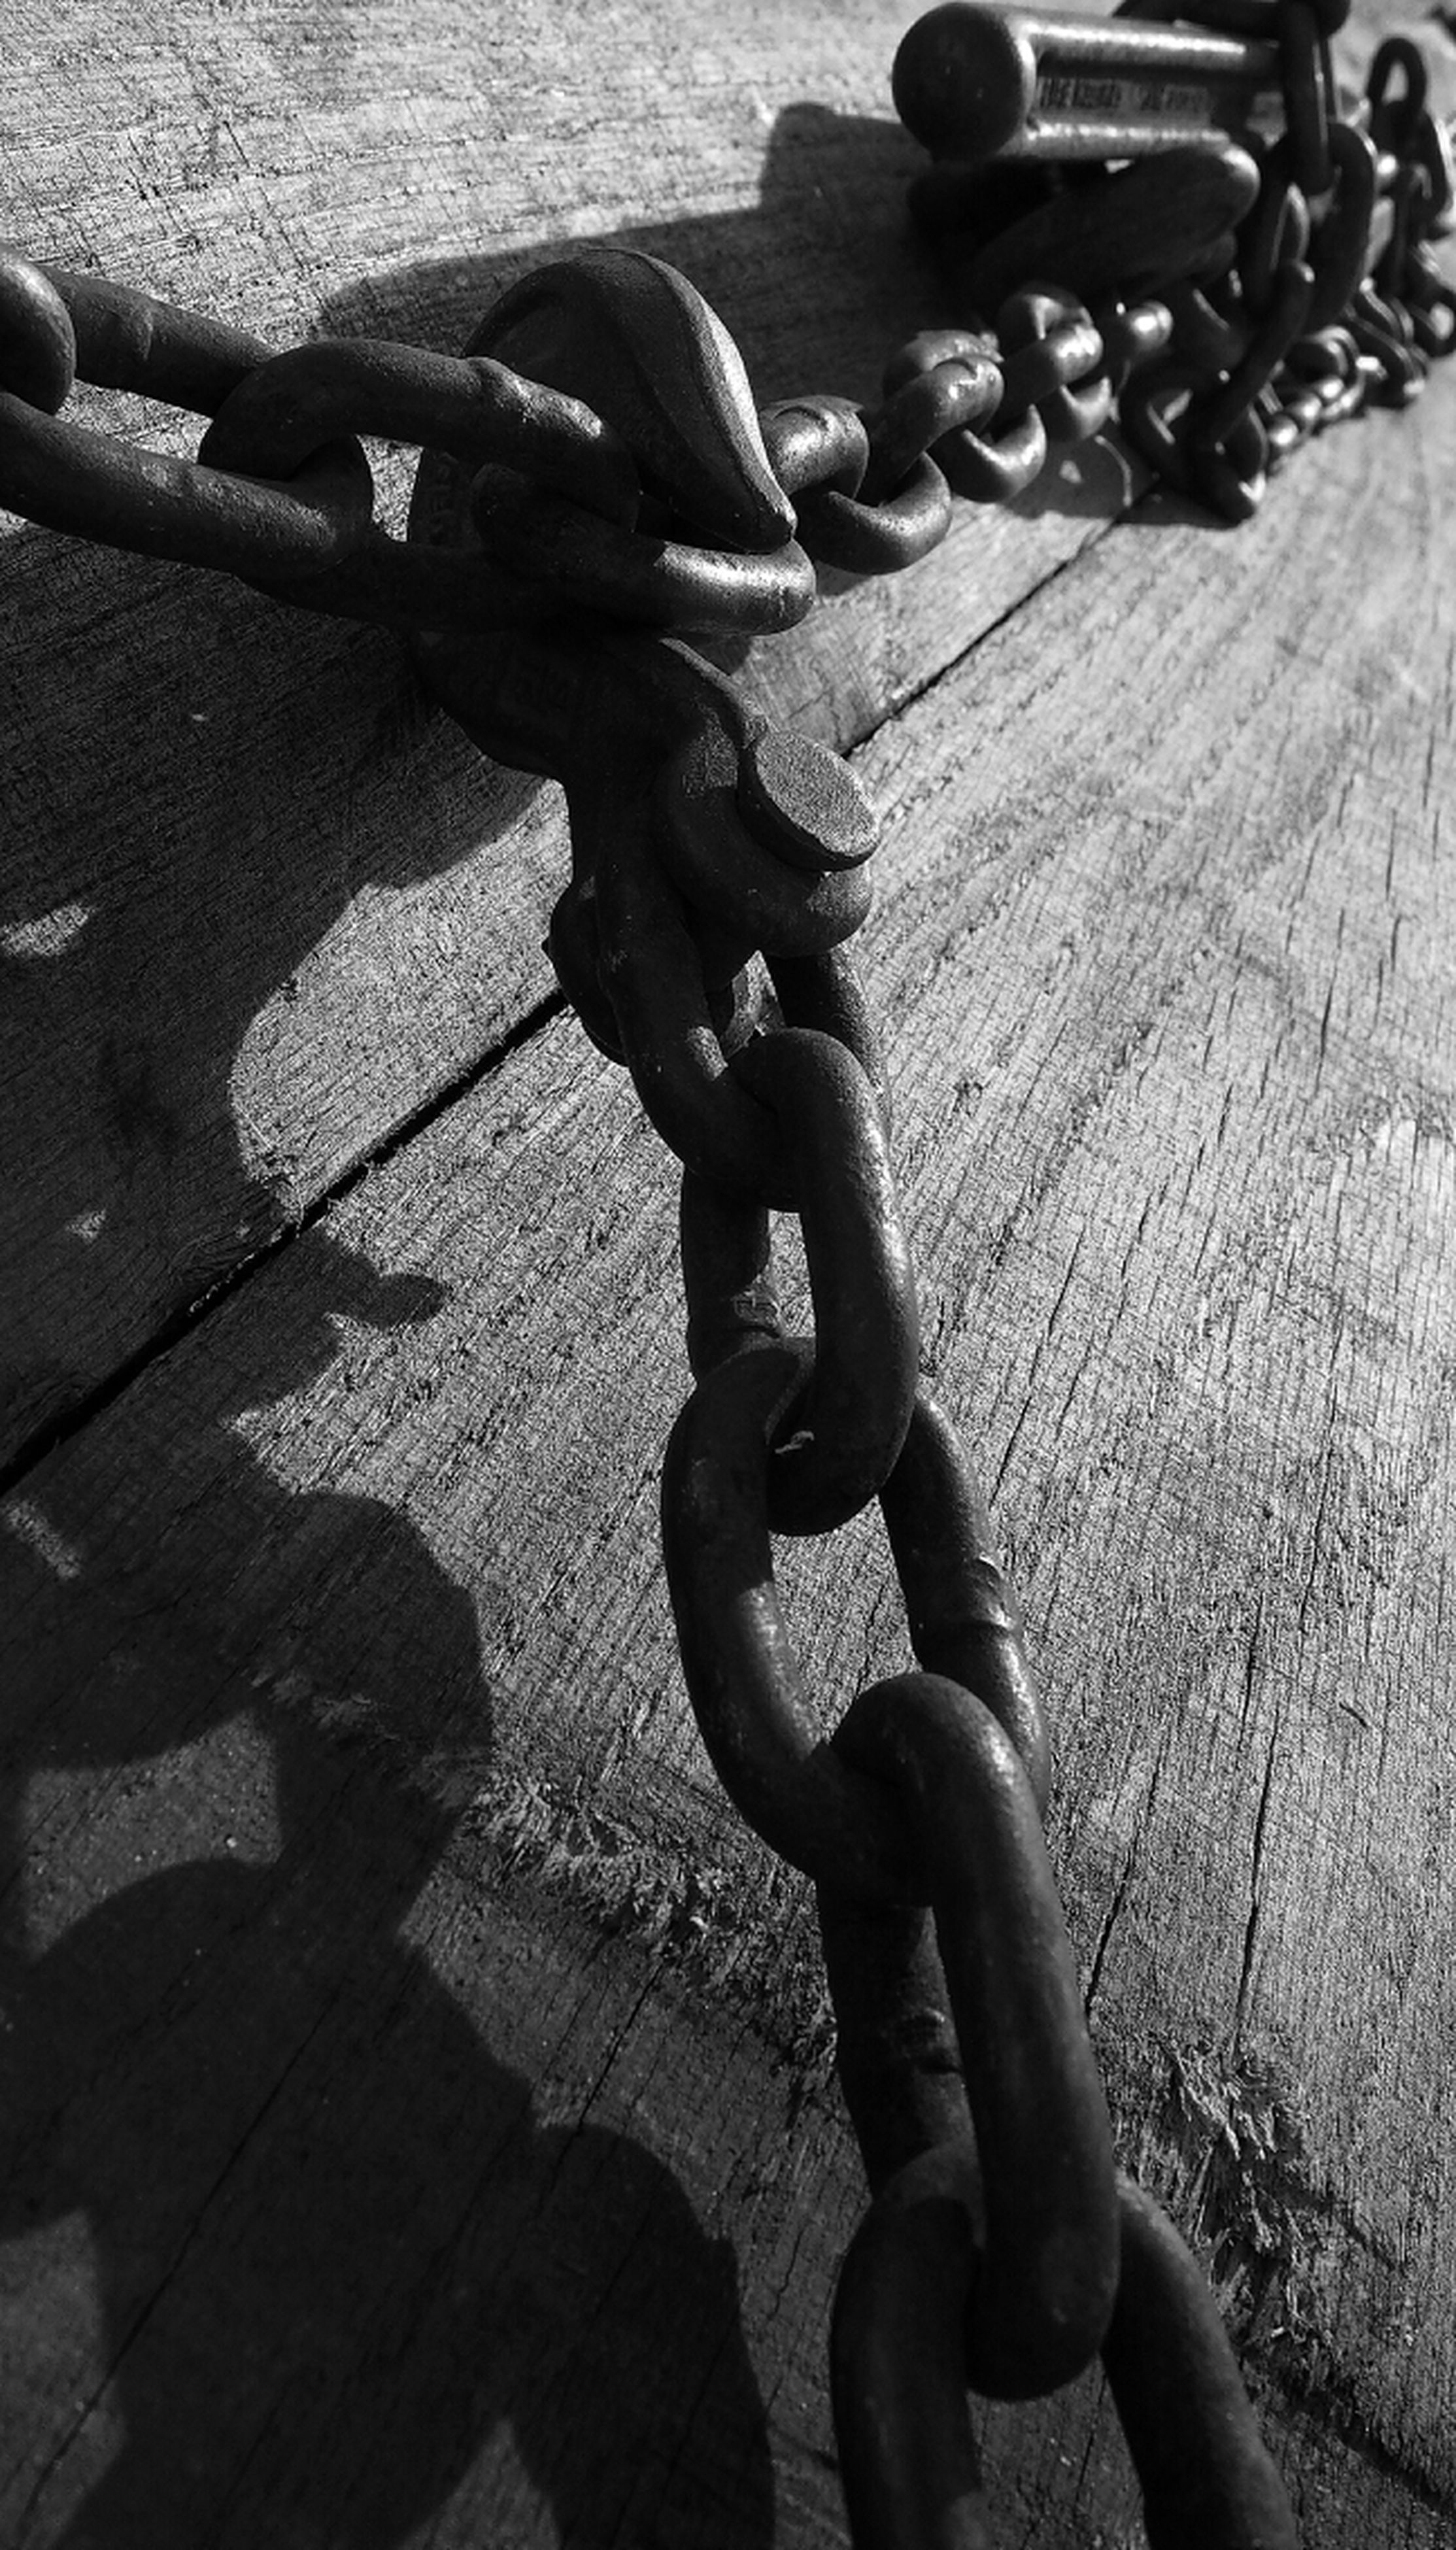 chain, metal, high angle view, security, safety, bicycle, protection, love, childhood, shadow, metallic, close-up, outdoors, day, connection, sunlight, street, rope, strength